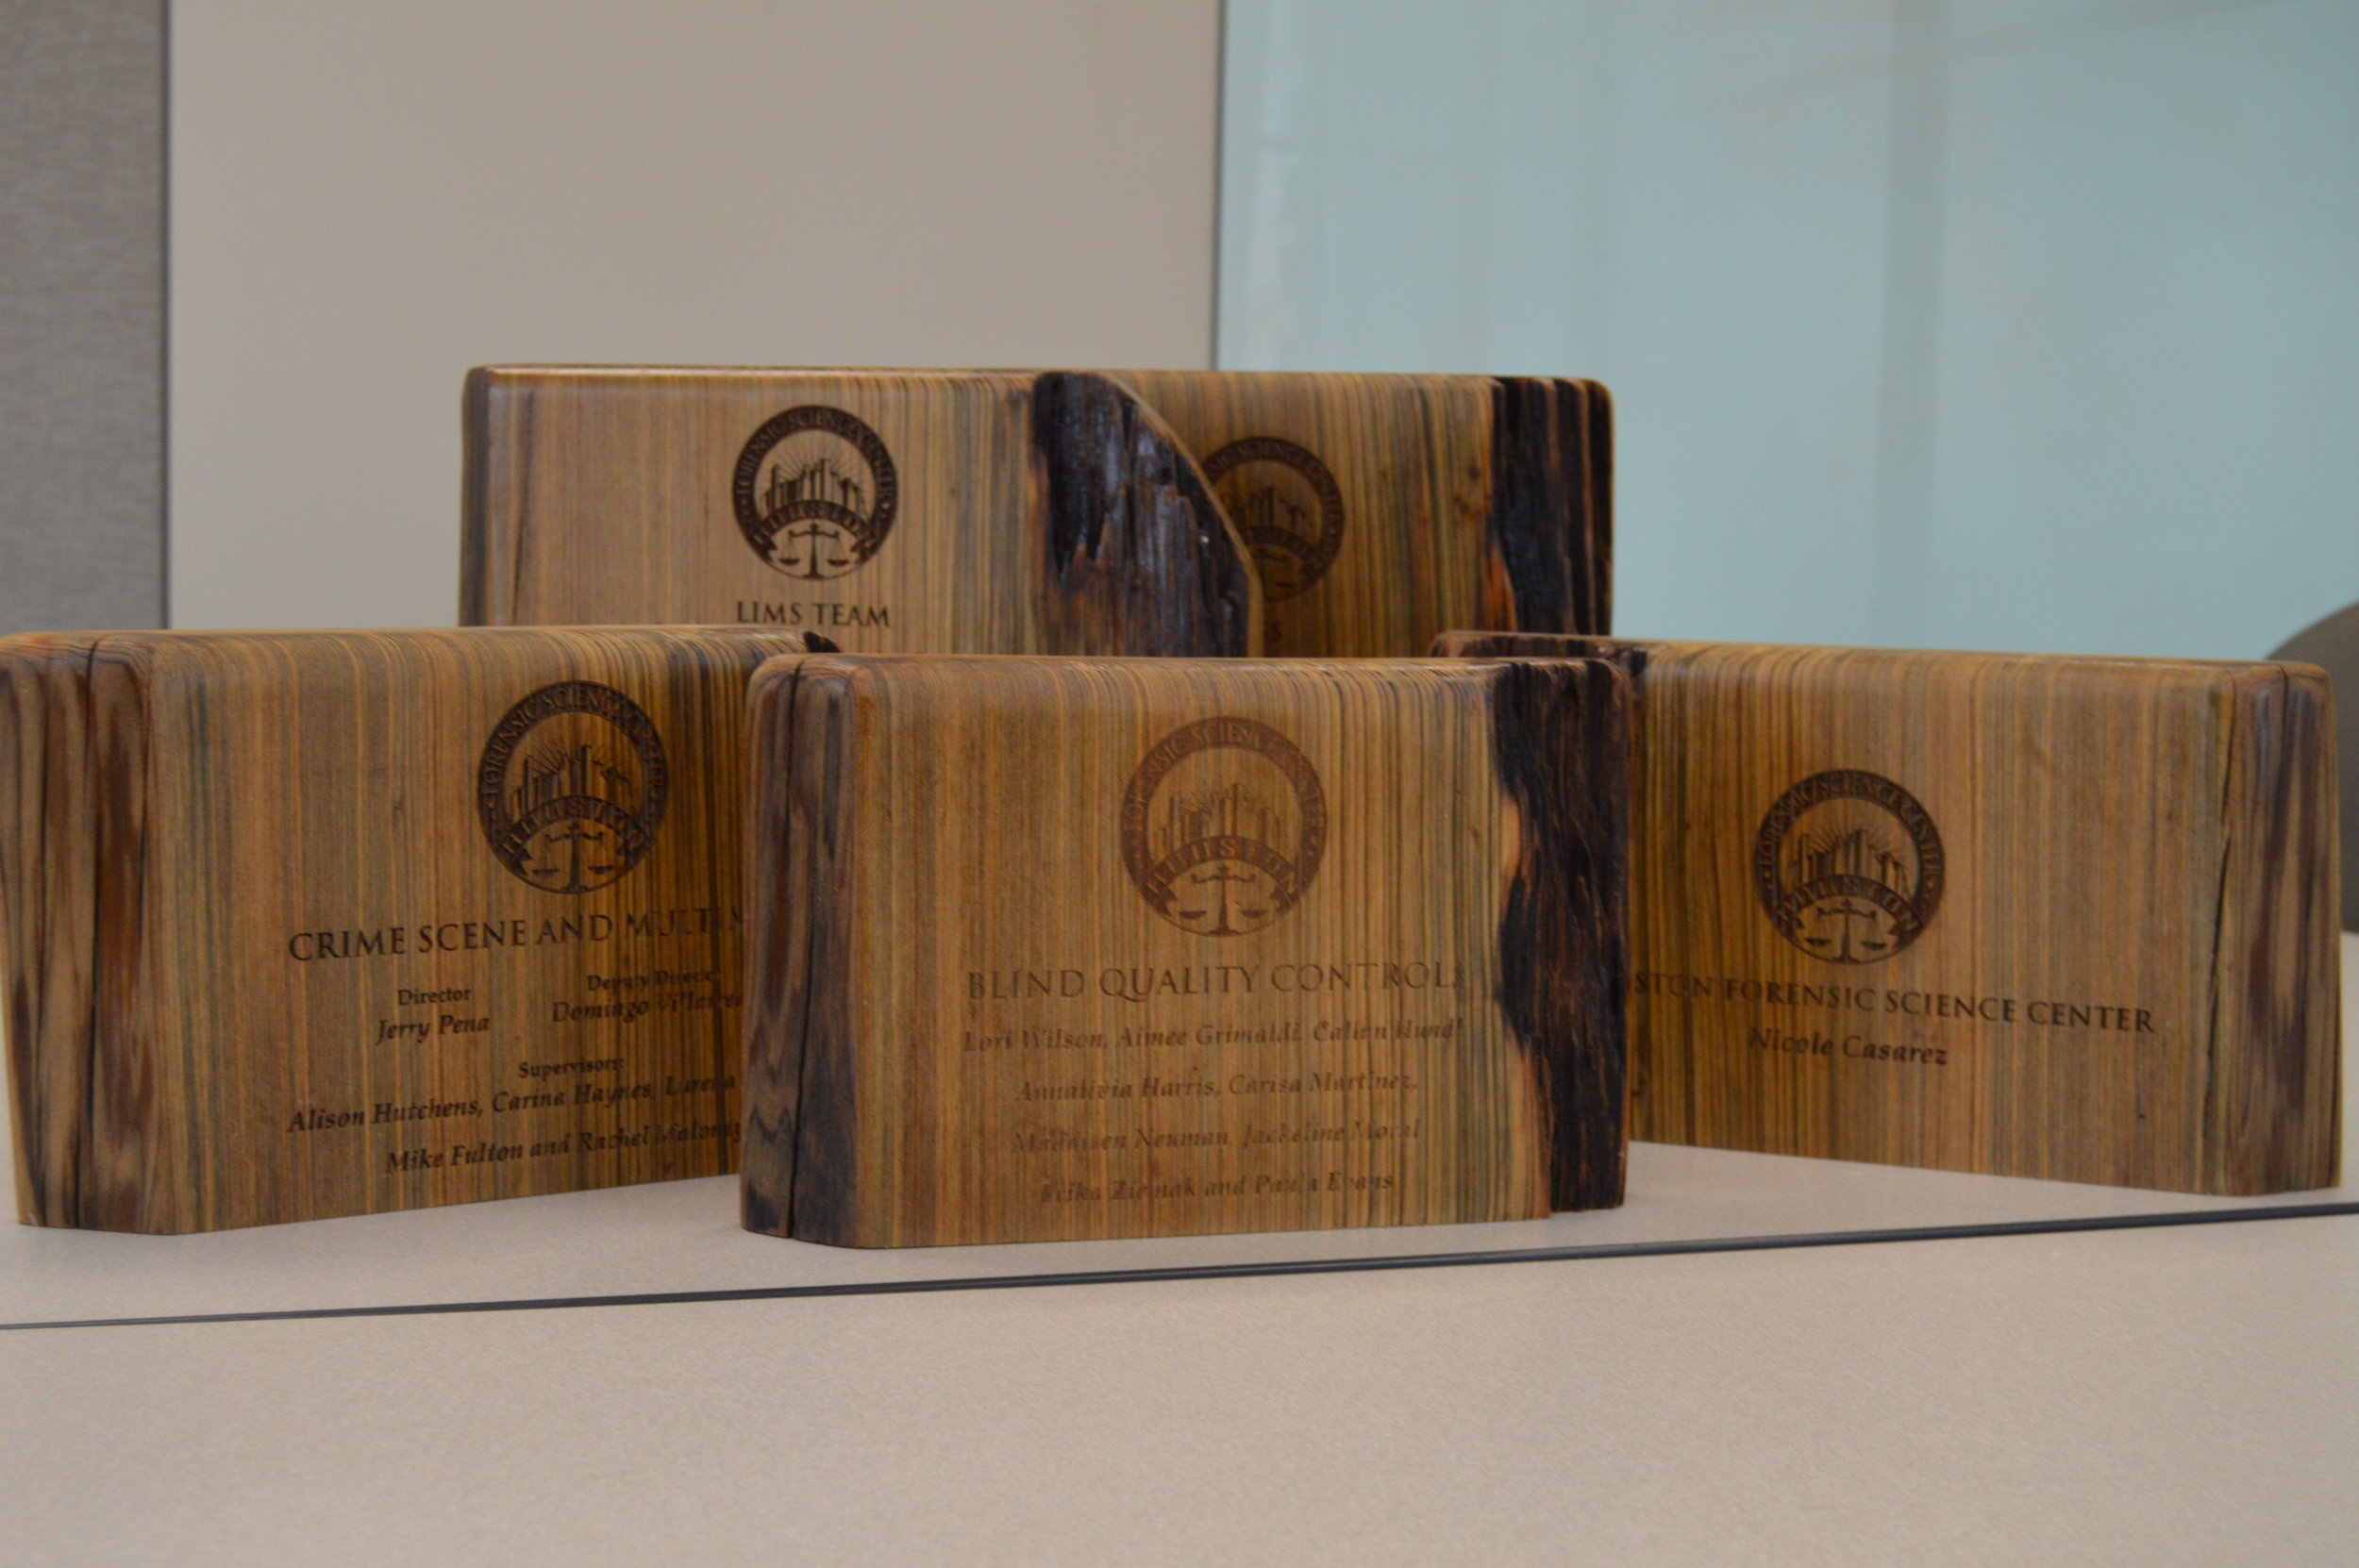 Branded Award - Custom Awards - Wood Burning - Custom Wood Burning - Laser Engraved Wood Awards - Laser Engraved Awards - Custom Awards - Engrave It Houston